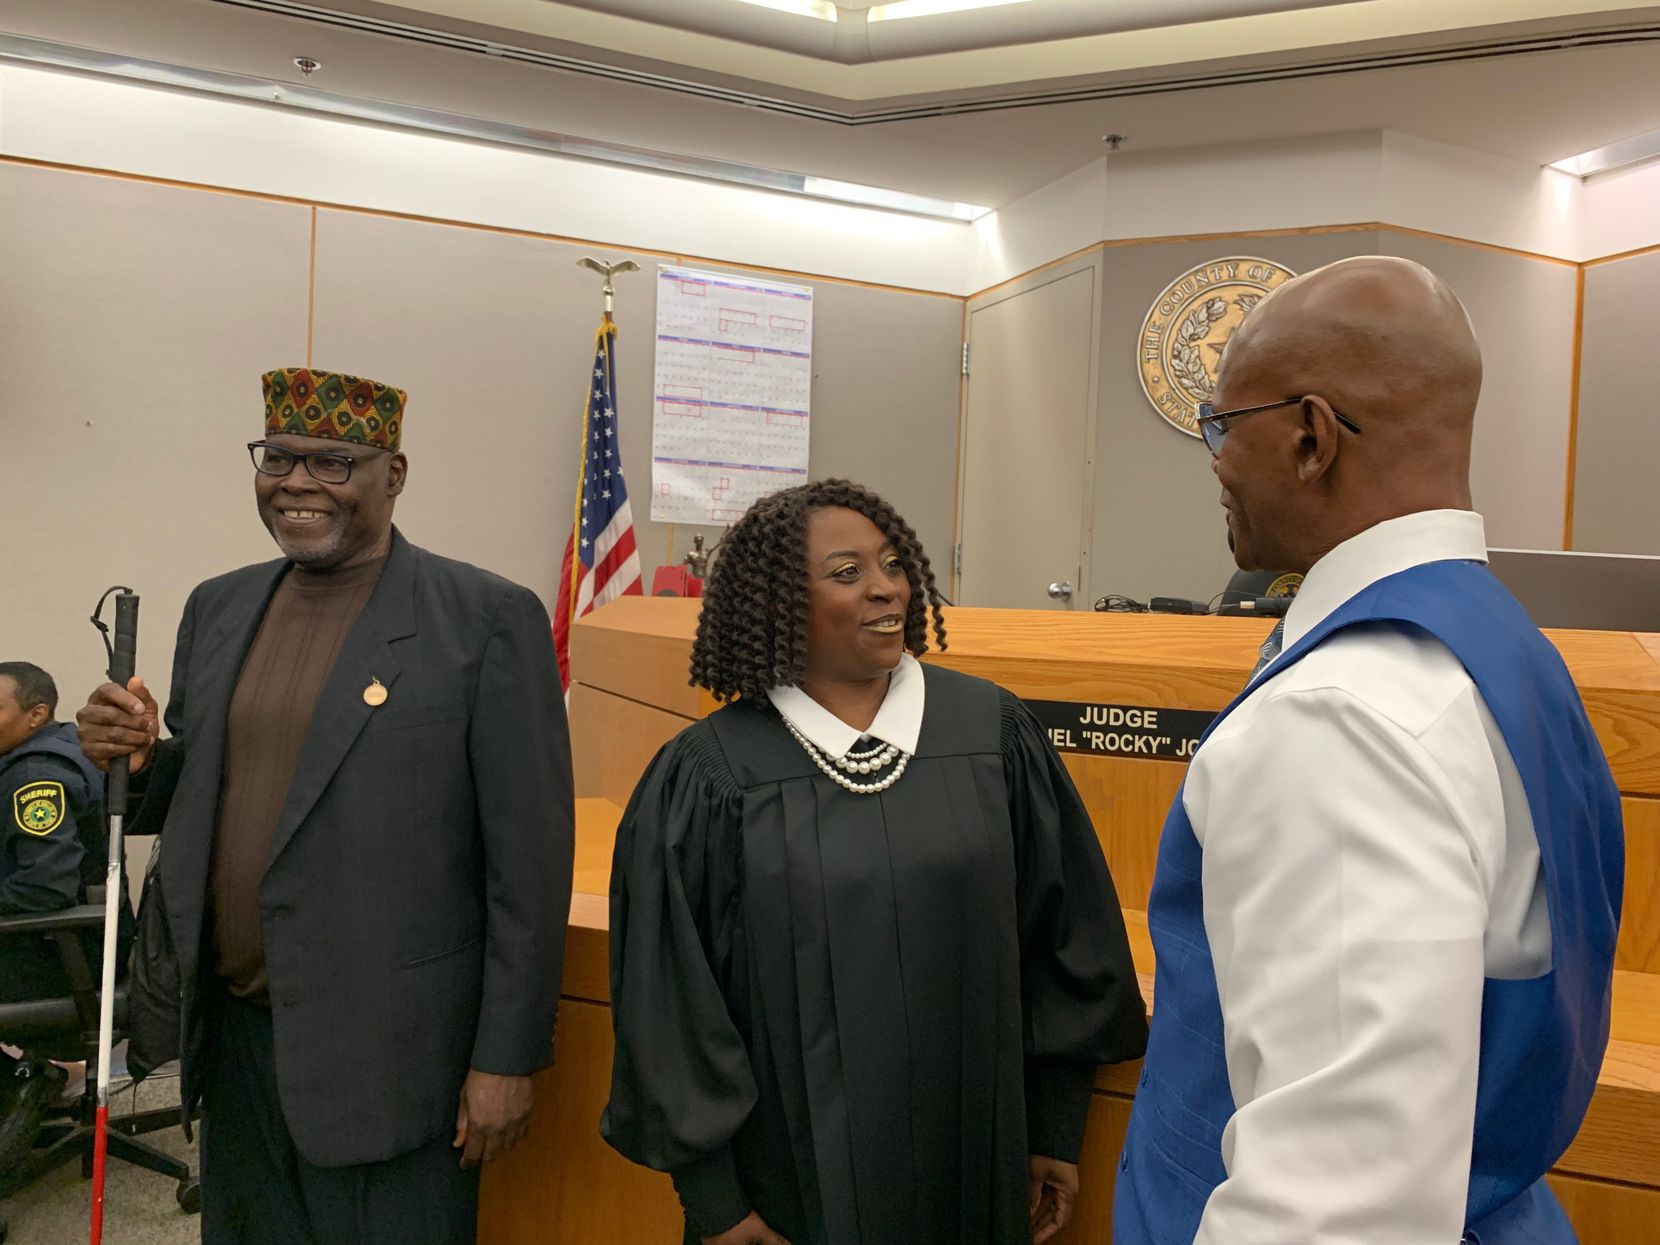 """Stanley Mozee (left) and Dennis Allen (right) were declared """"actually innocent"""" Friday by state District Judge Raquel """"Rocky"""" Jones in the 1999 murder of the Rev. Jesse Borns Jr. Prosecutors withheld evidence that could have helped them at trial and DNA evidence excludes them as the killers. Law enforcement is searching for the true killers, who murdered Borns in his South Dallas woodworking shop by stabbing him 47 times."""